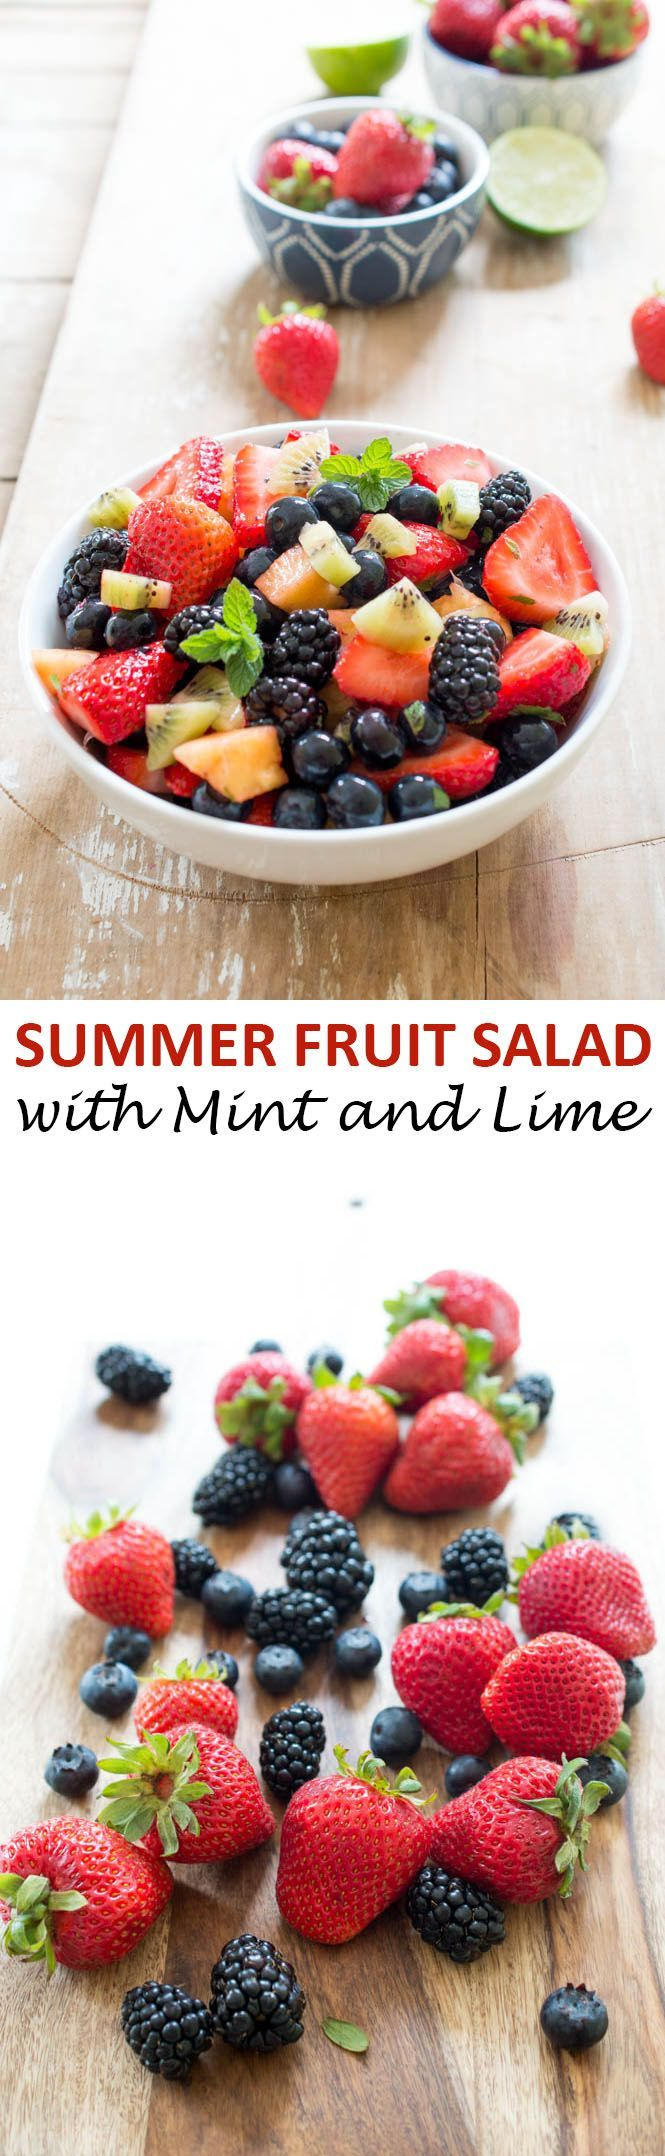 Summer Fruit Salad with Lime, Mint and Honey. A super easy and healthy side dish. Perfect for Memorial Day! | chefsavvy.com #recipe #fruit #salad #healthy